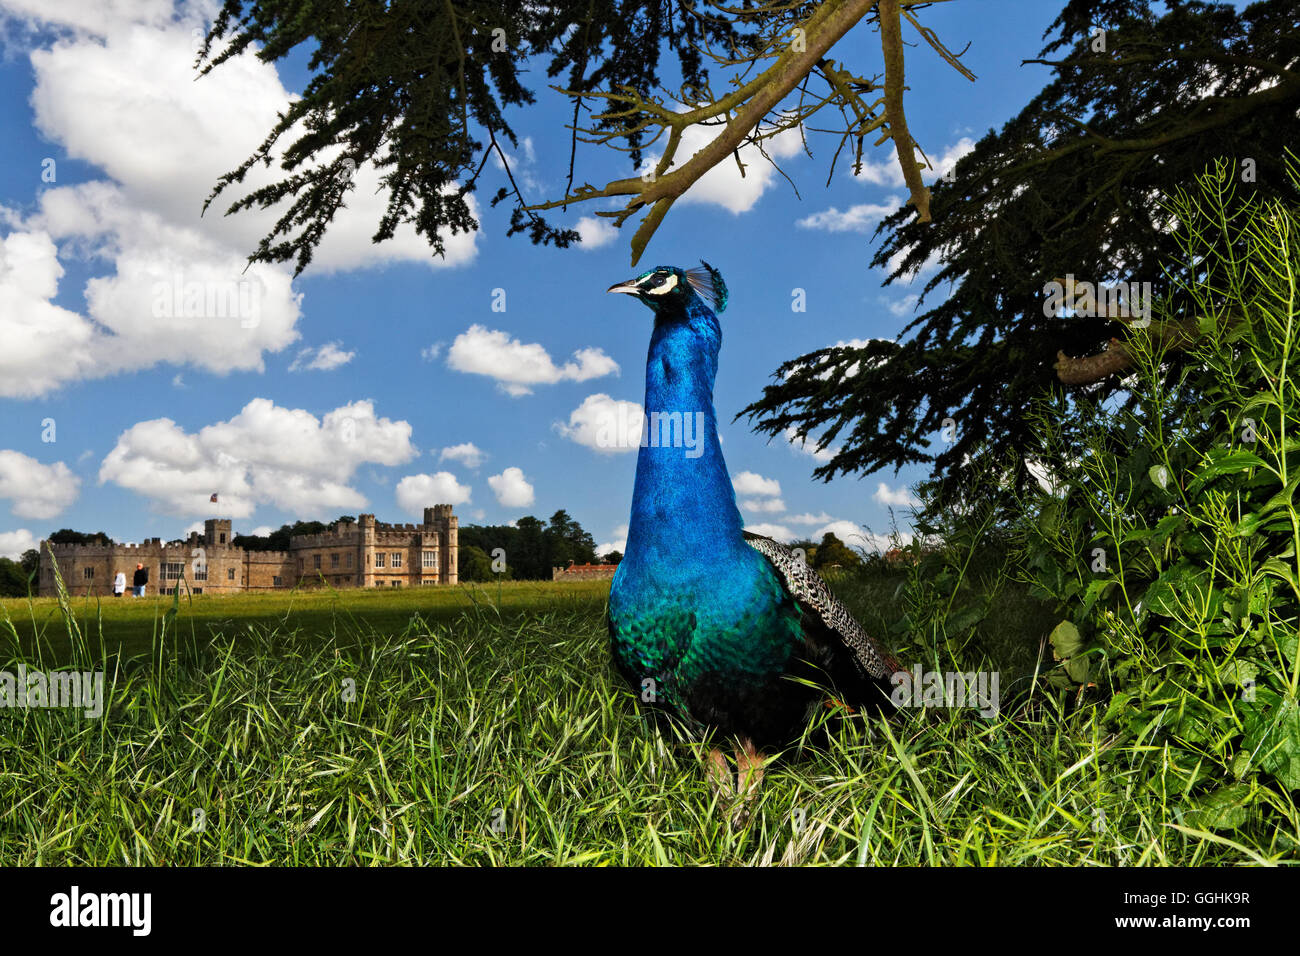 Peacock at Leeds Castle, Maidstone, Kent, England, Great Britain - Stock Image